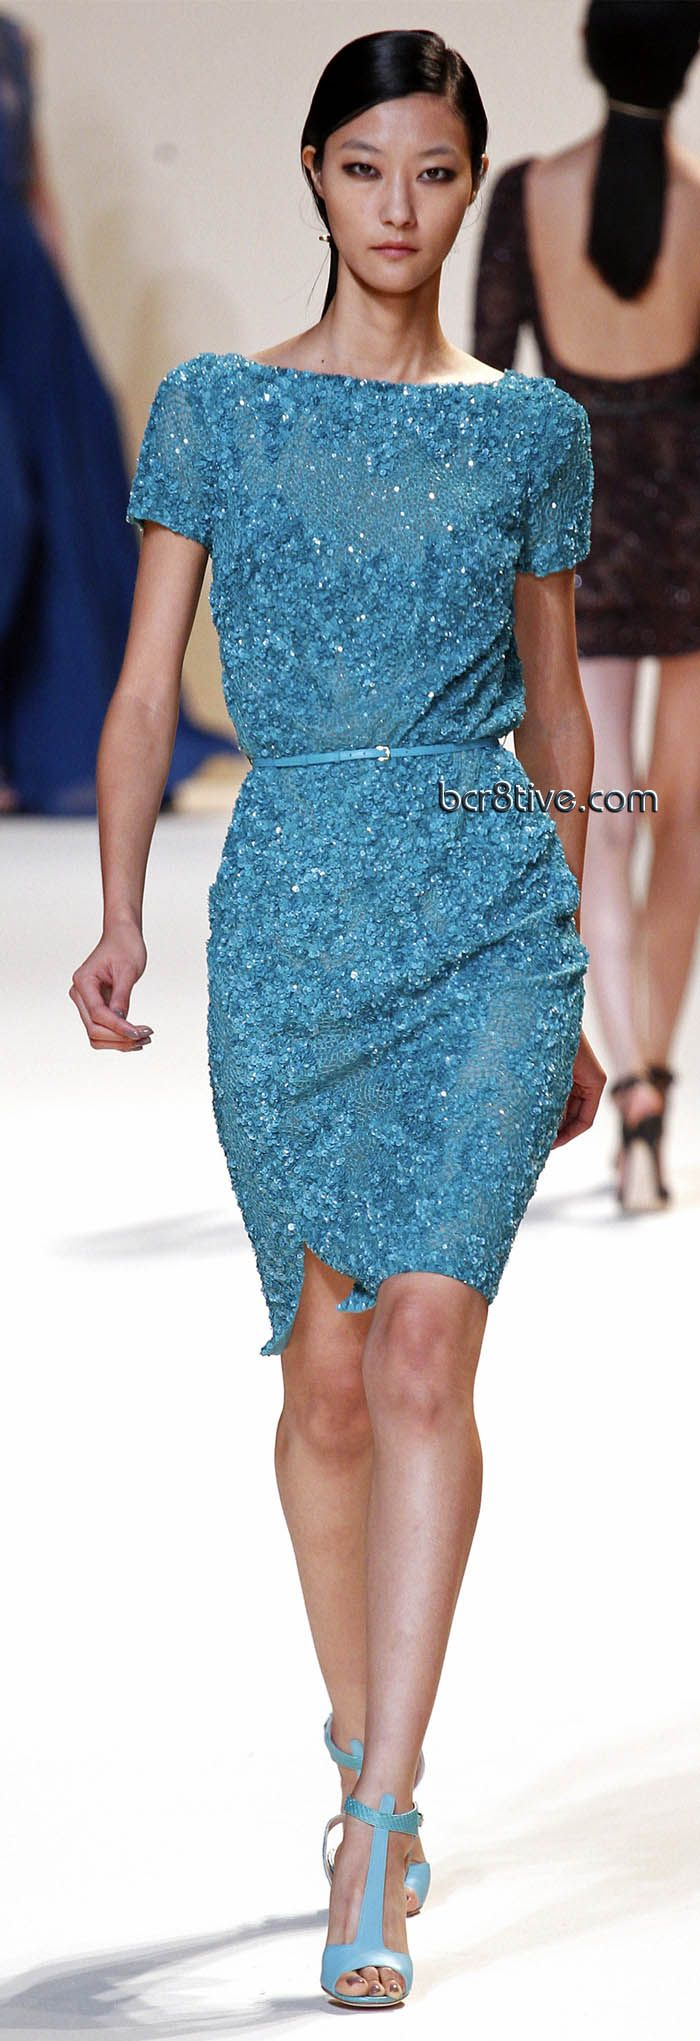 The 607 best •❈• Fashion - Elie Saab Serendipity •❈• images on ...